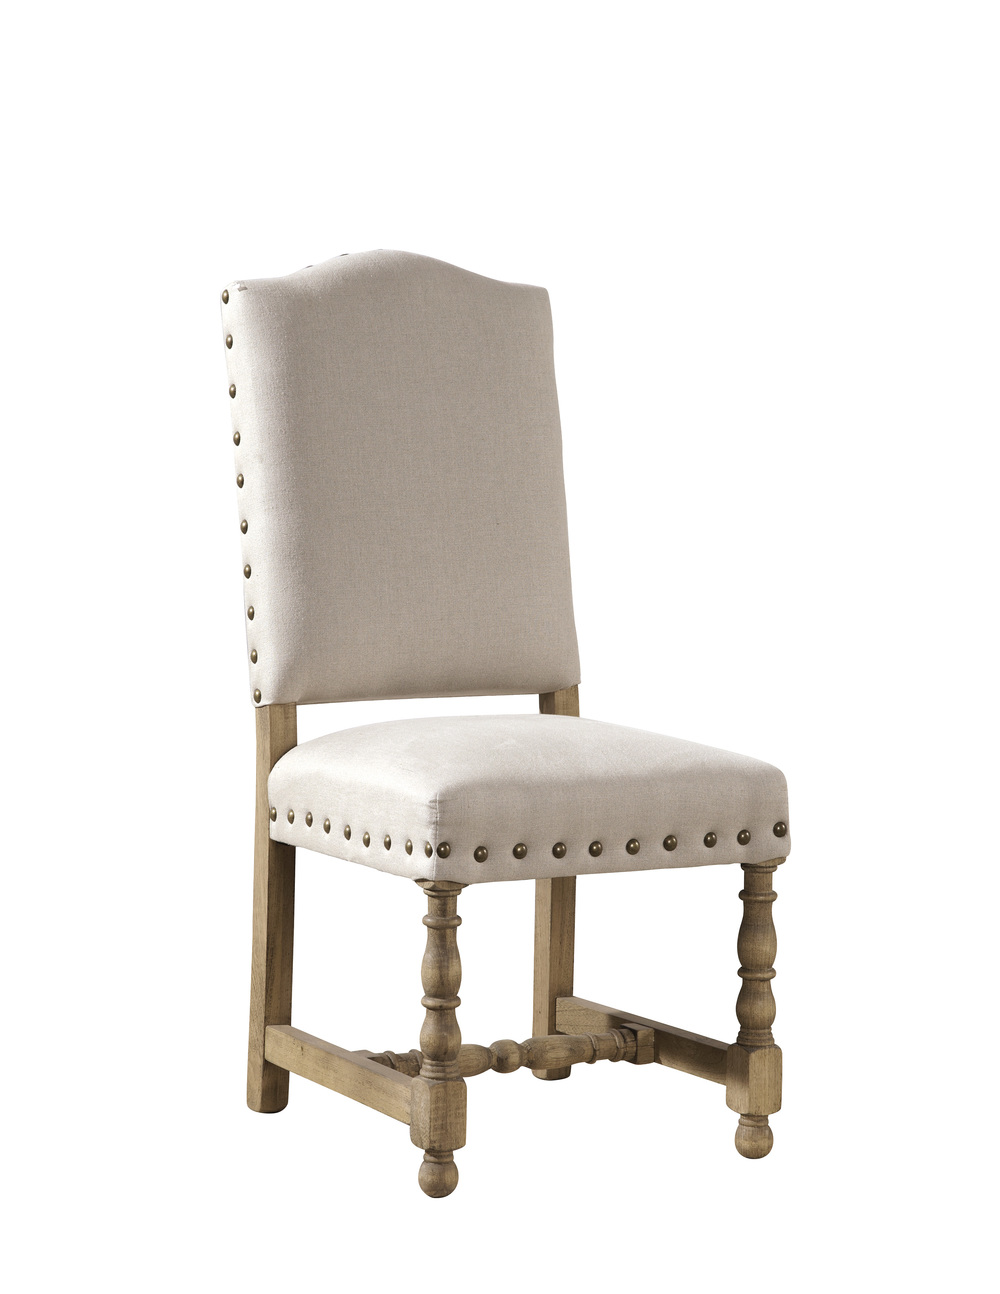 Furniture Classics Limited - Linen Madrid Chair